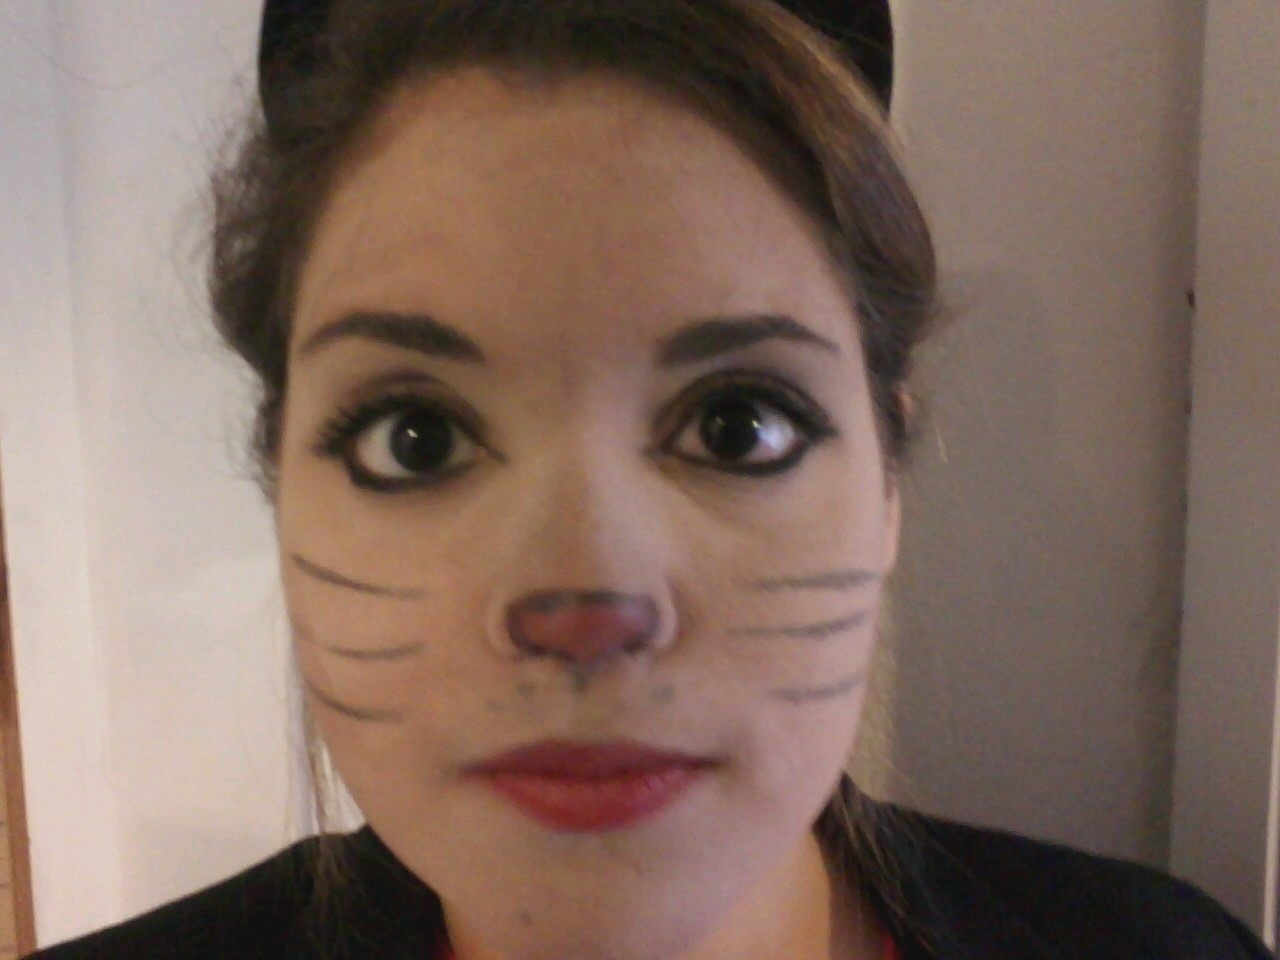 Pictures Of Cat In The Hat Makeup